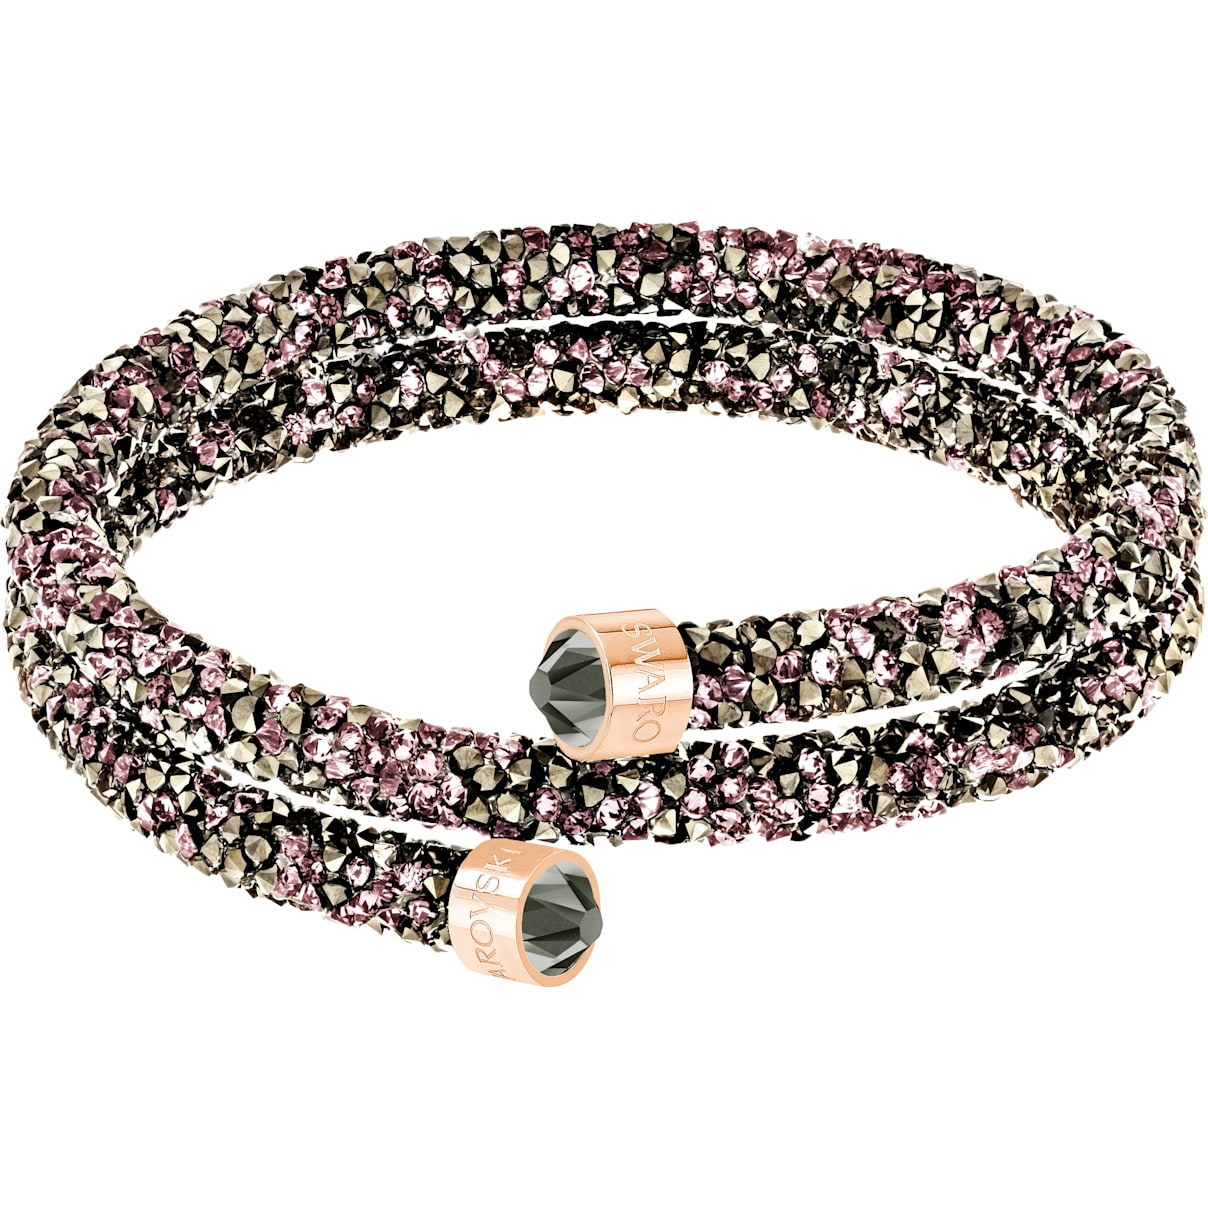 Swarovski Crystaldust Double Bangle, Multi-colored, Rose-gold tone plated